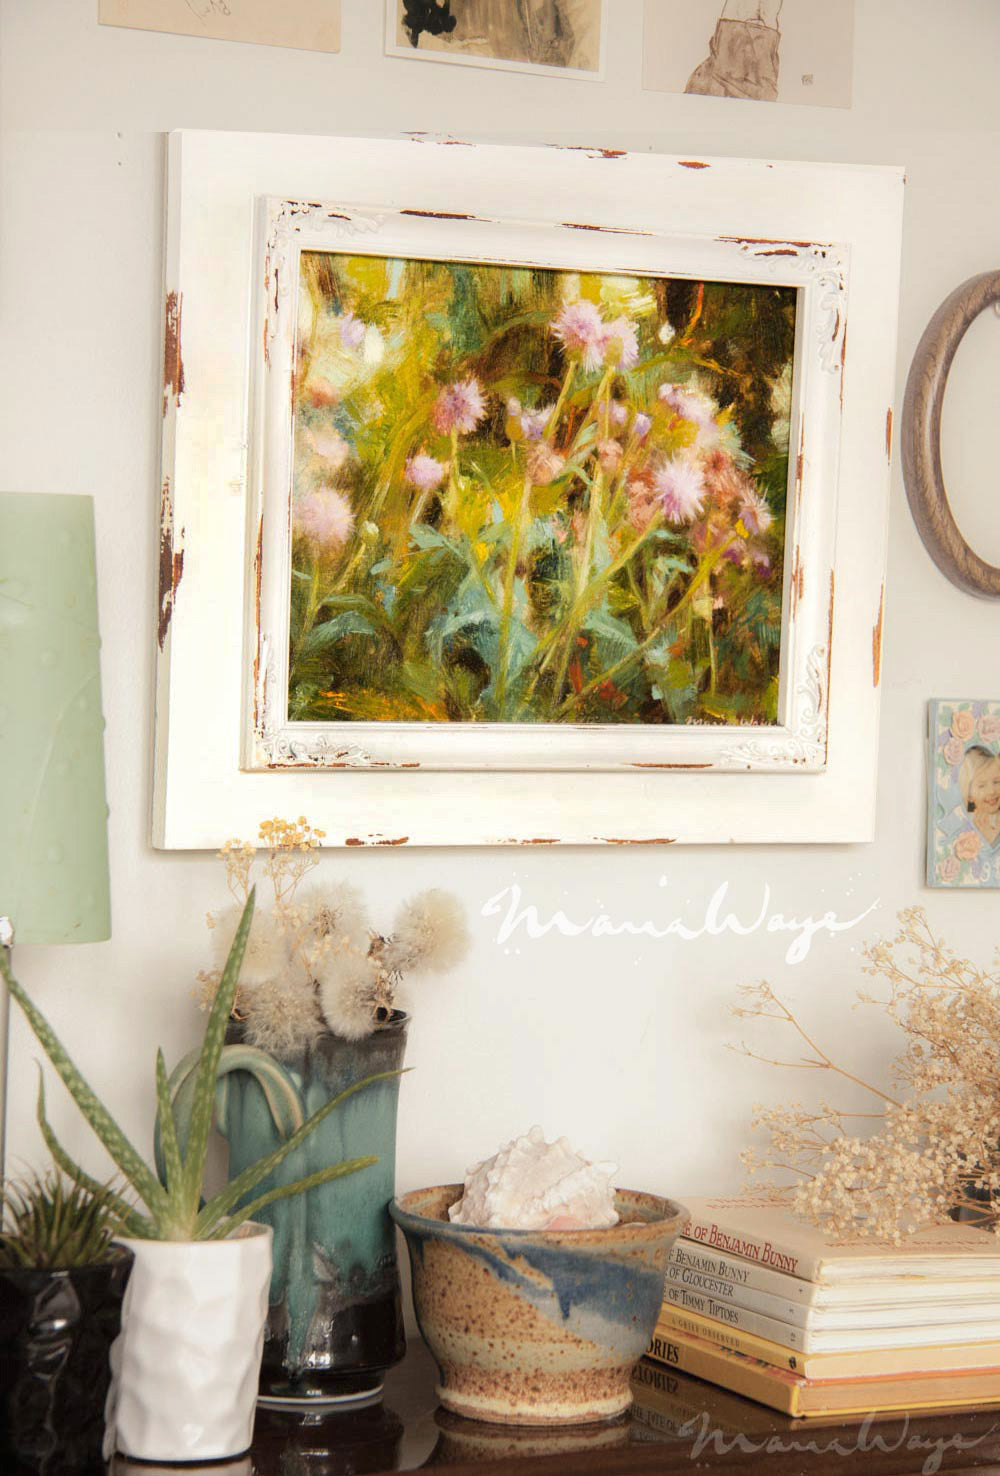 Pretty Charming Rustic Look You Can Shop For Fine Art Floral Oil Paintings